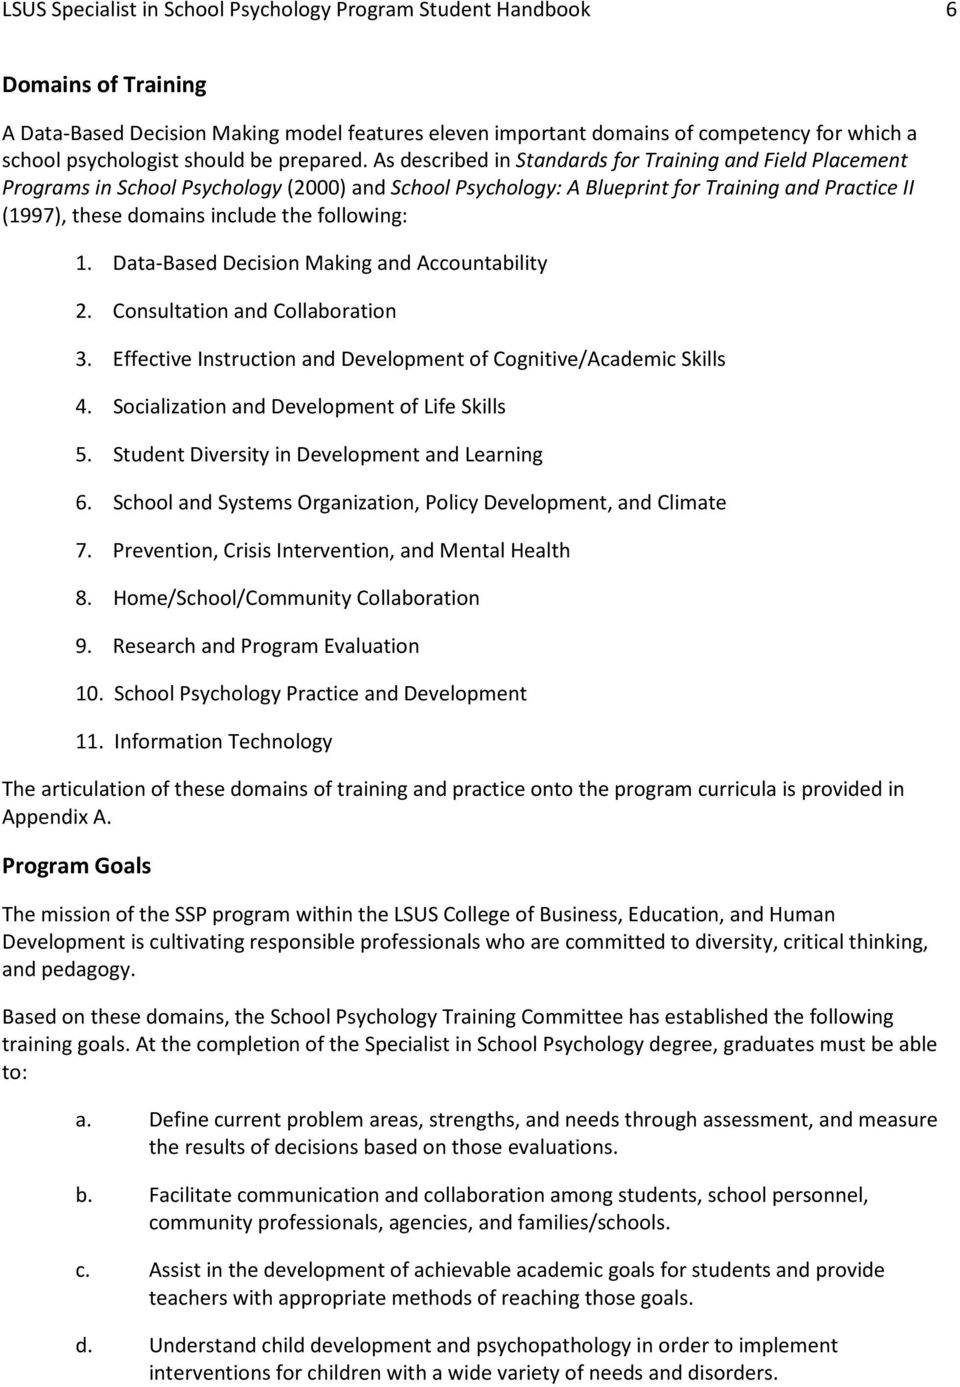 As described in Standards for Training and Field Placement Programs in School Psychology (2000) and School Psychology: A Blueprint for Training and Practice II (1997), these domains include the